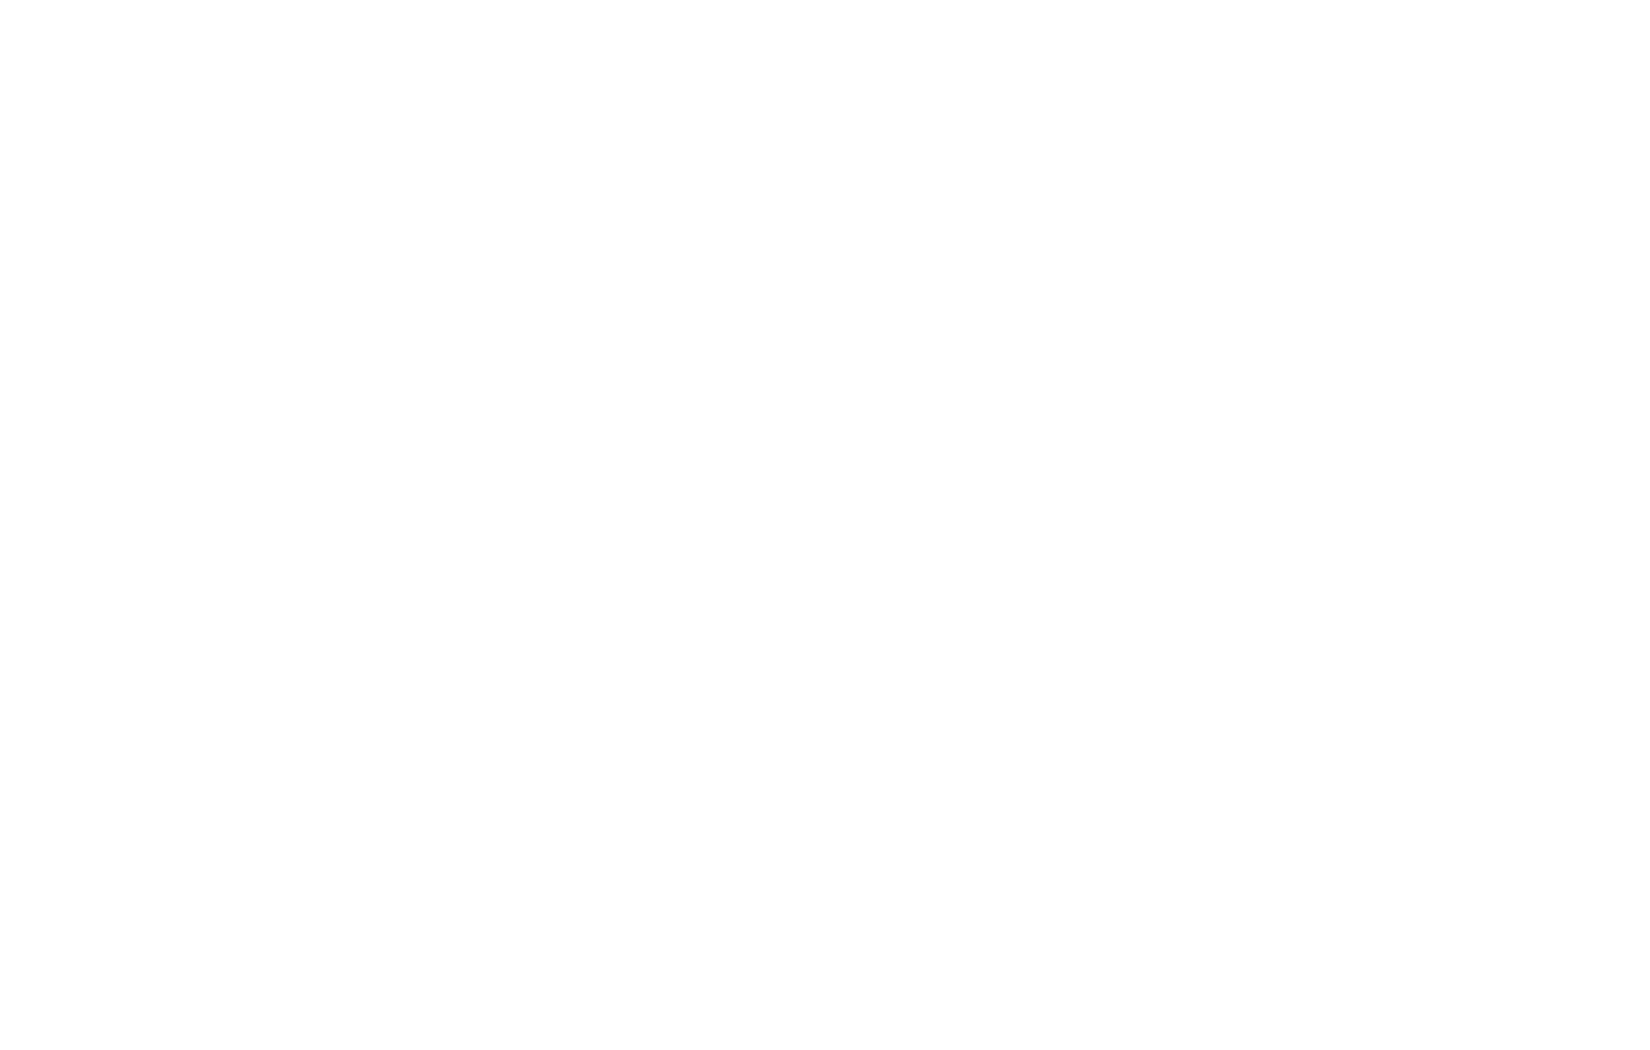 Treetops is a certified installer for the Tesla Powerwall 2